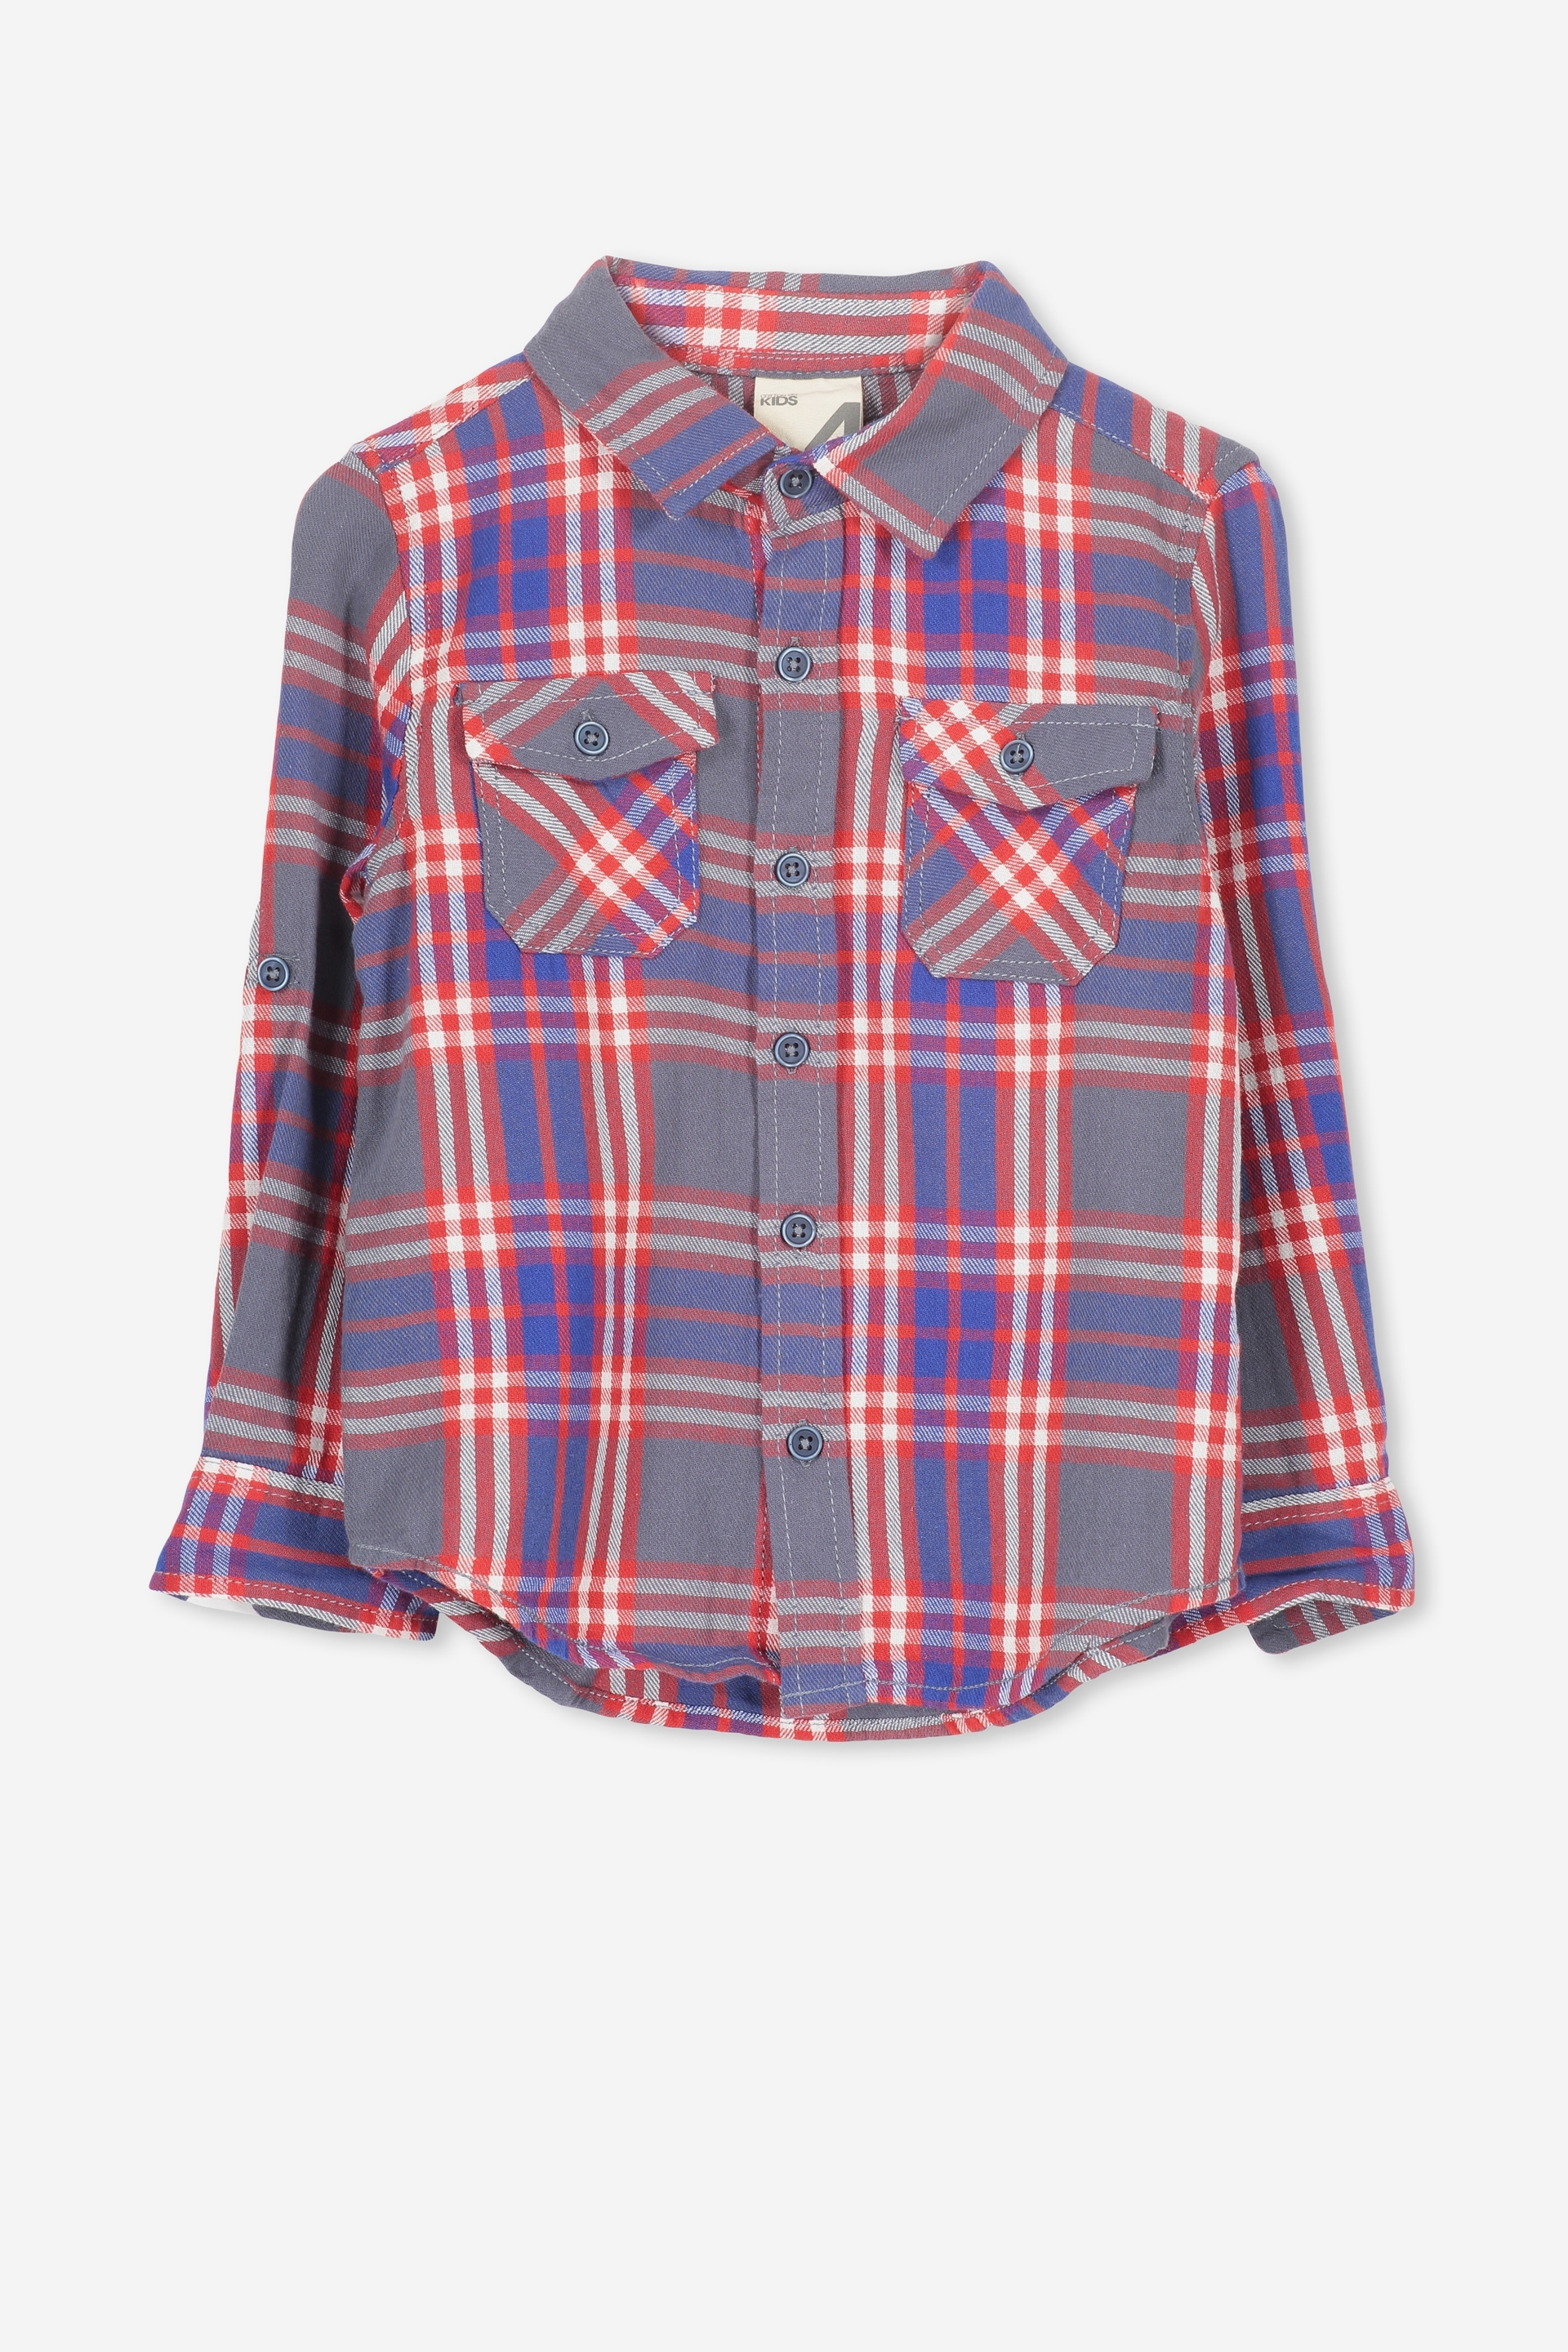 Cotton On Kids  Noah Long Sleeve Shirt  Washed regata multi check